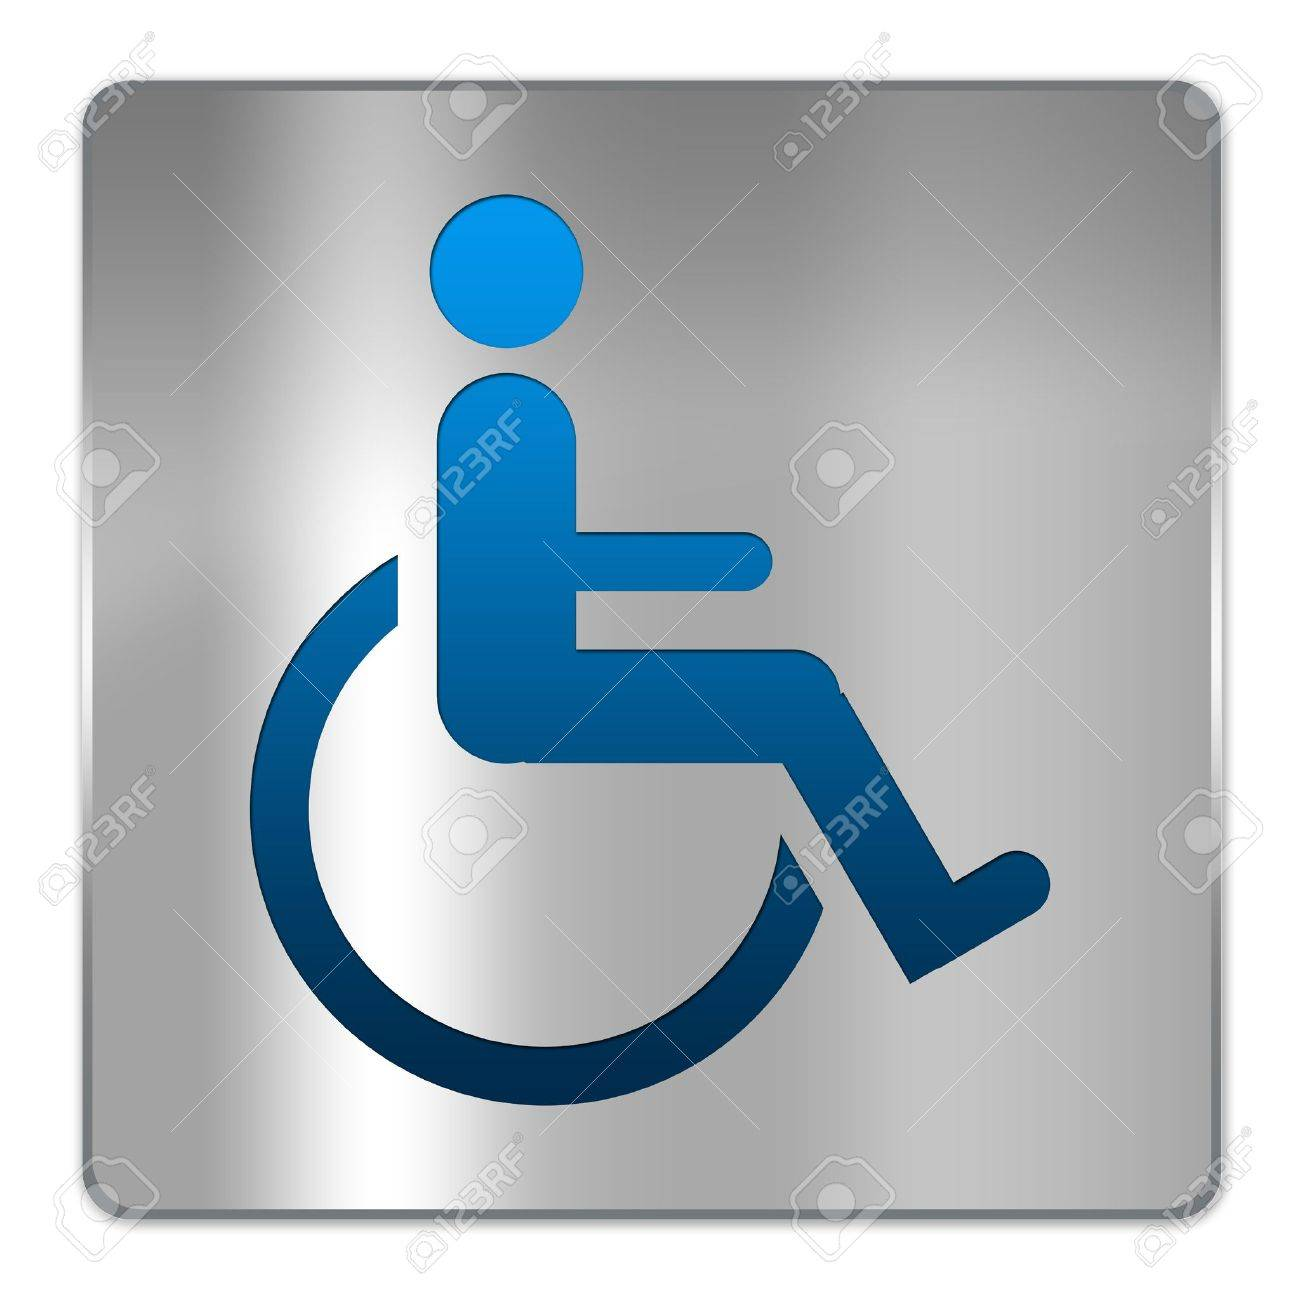 Bathroom Sign Handicap square silver metallic plate for wheelchair handicap toilet sign